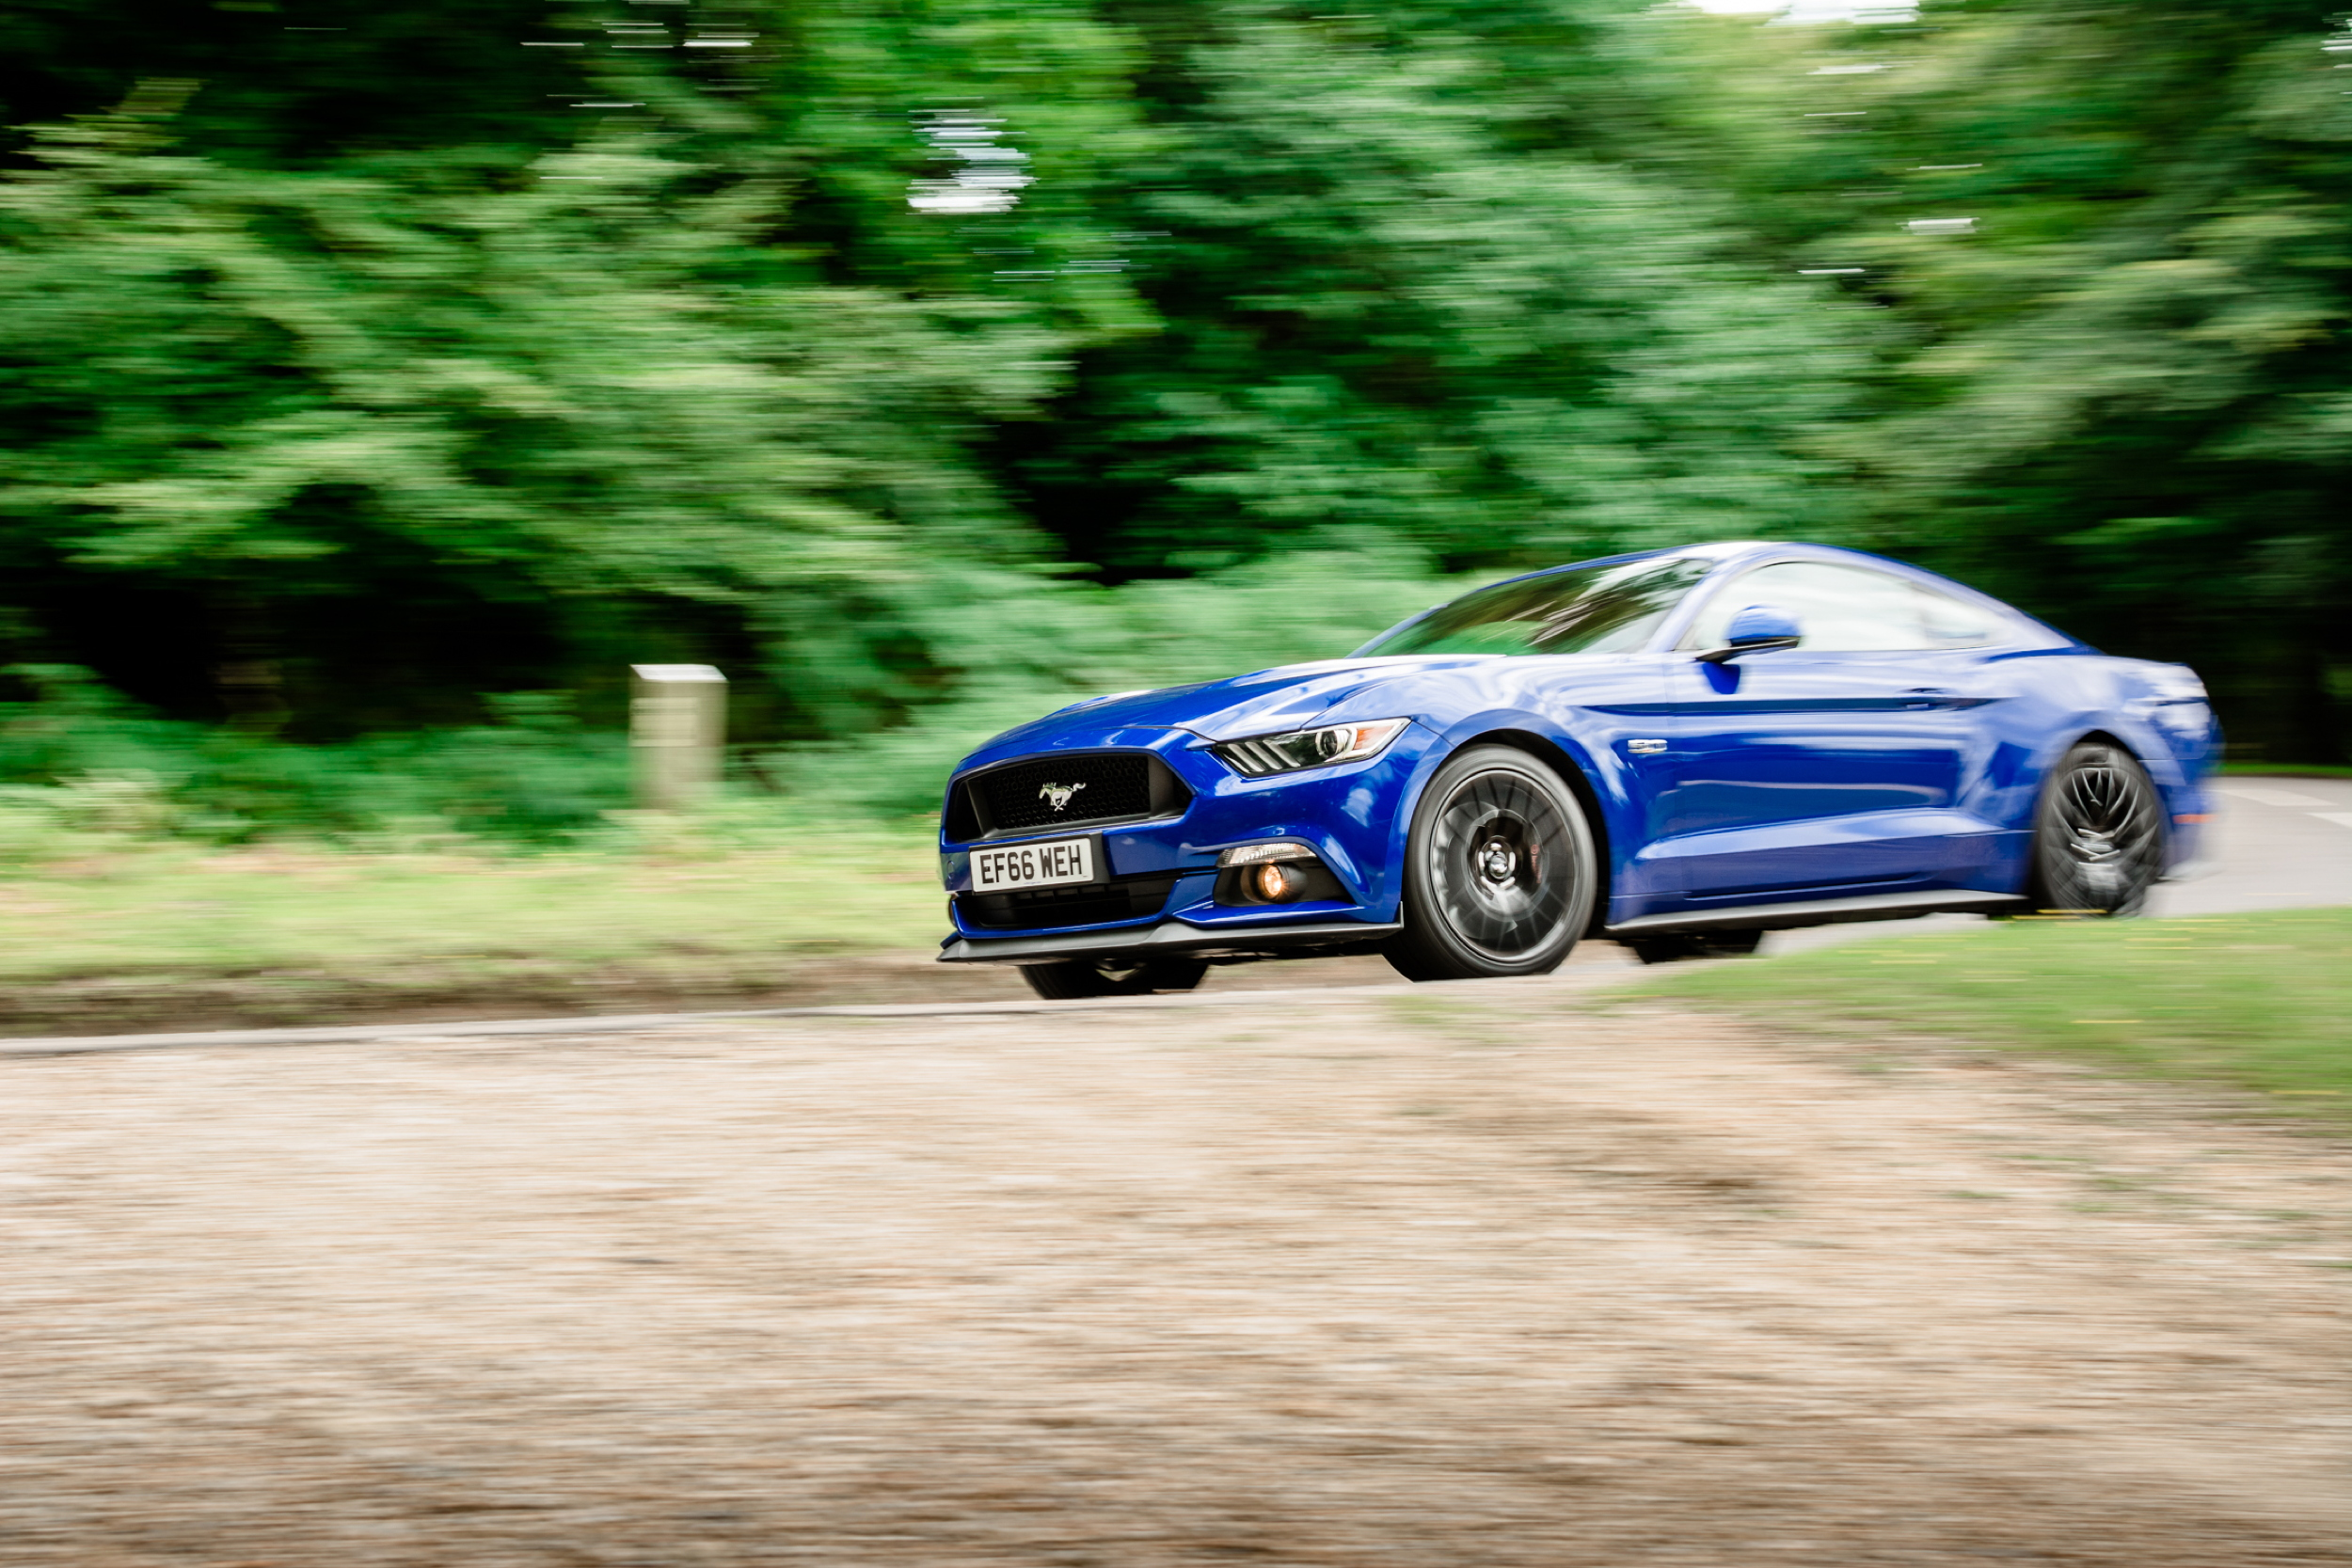 2017 Ford Mustang at speed